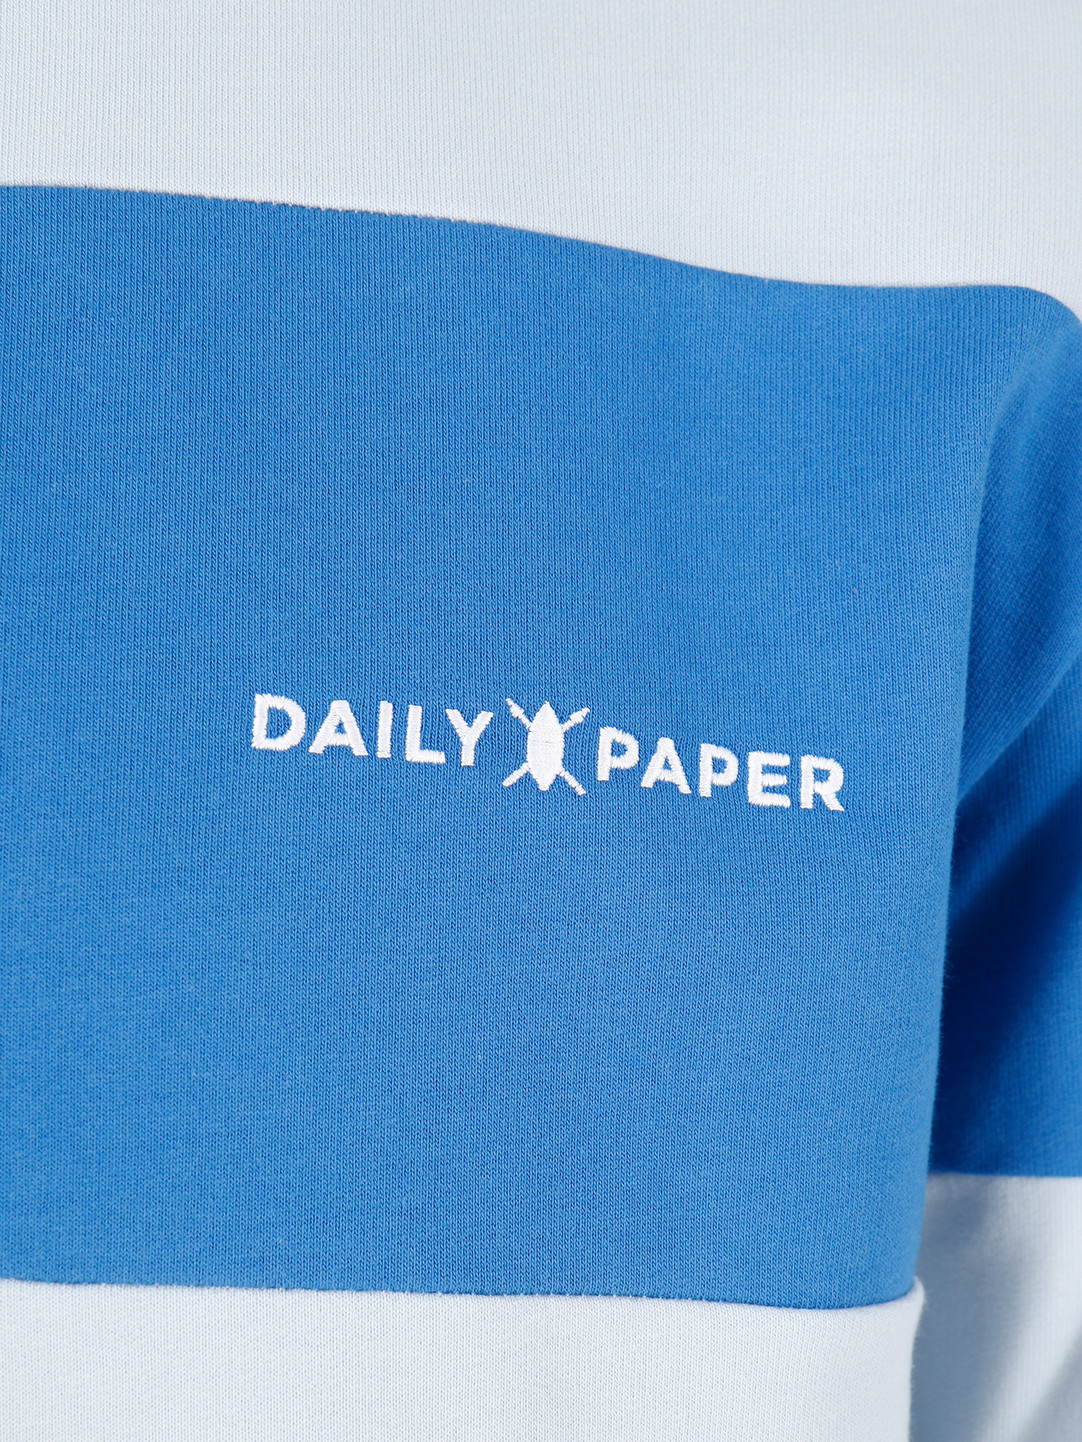 Daily Paper Daily Paper Apolo Olympian Blue Stripe 20E1LS01-01